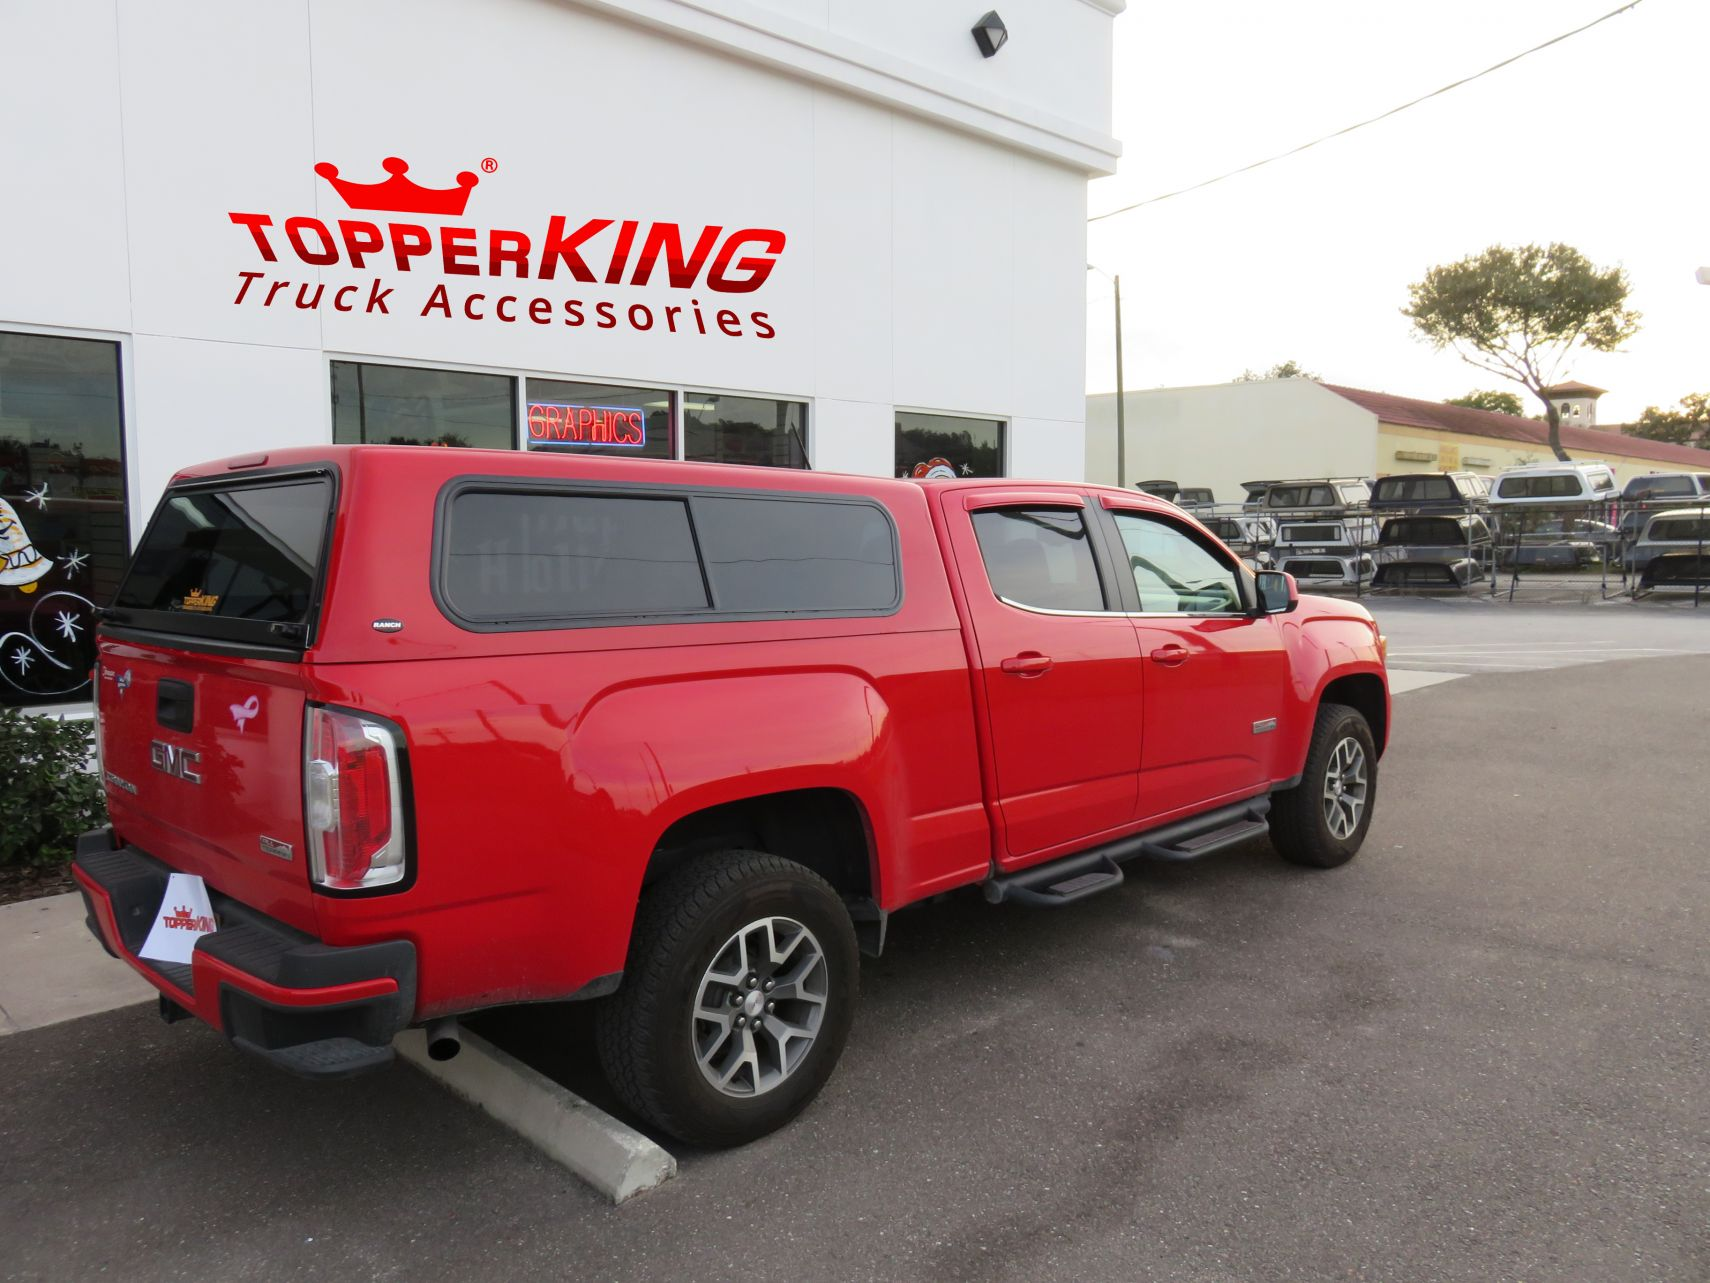 GMC Canyon Ranch Sierra fiberglass topper and a custom hitch by TopperKING in Brandon, FL 813-689-2449 Call today to start on your truck!